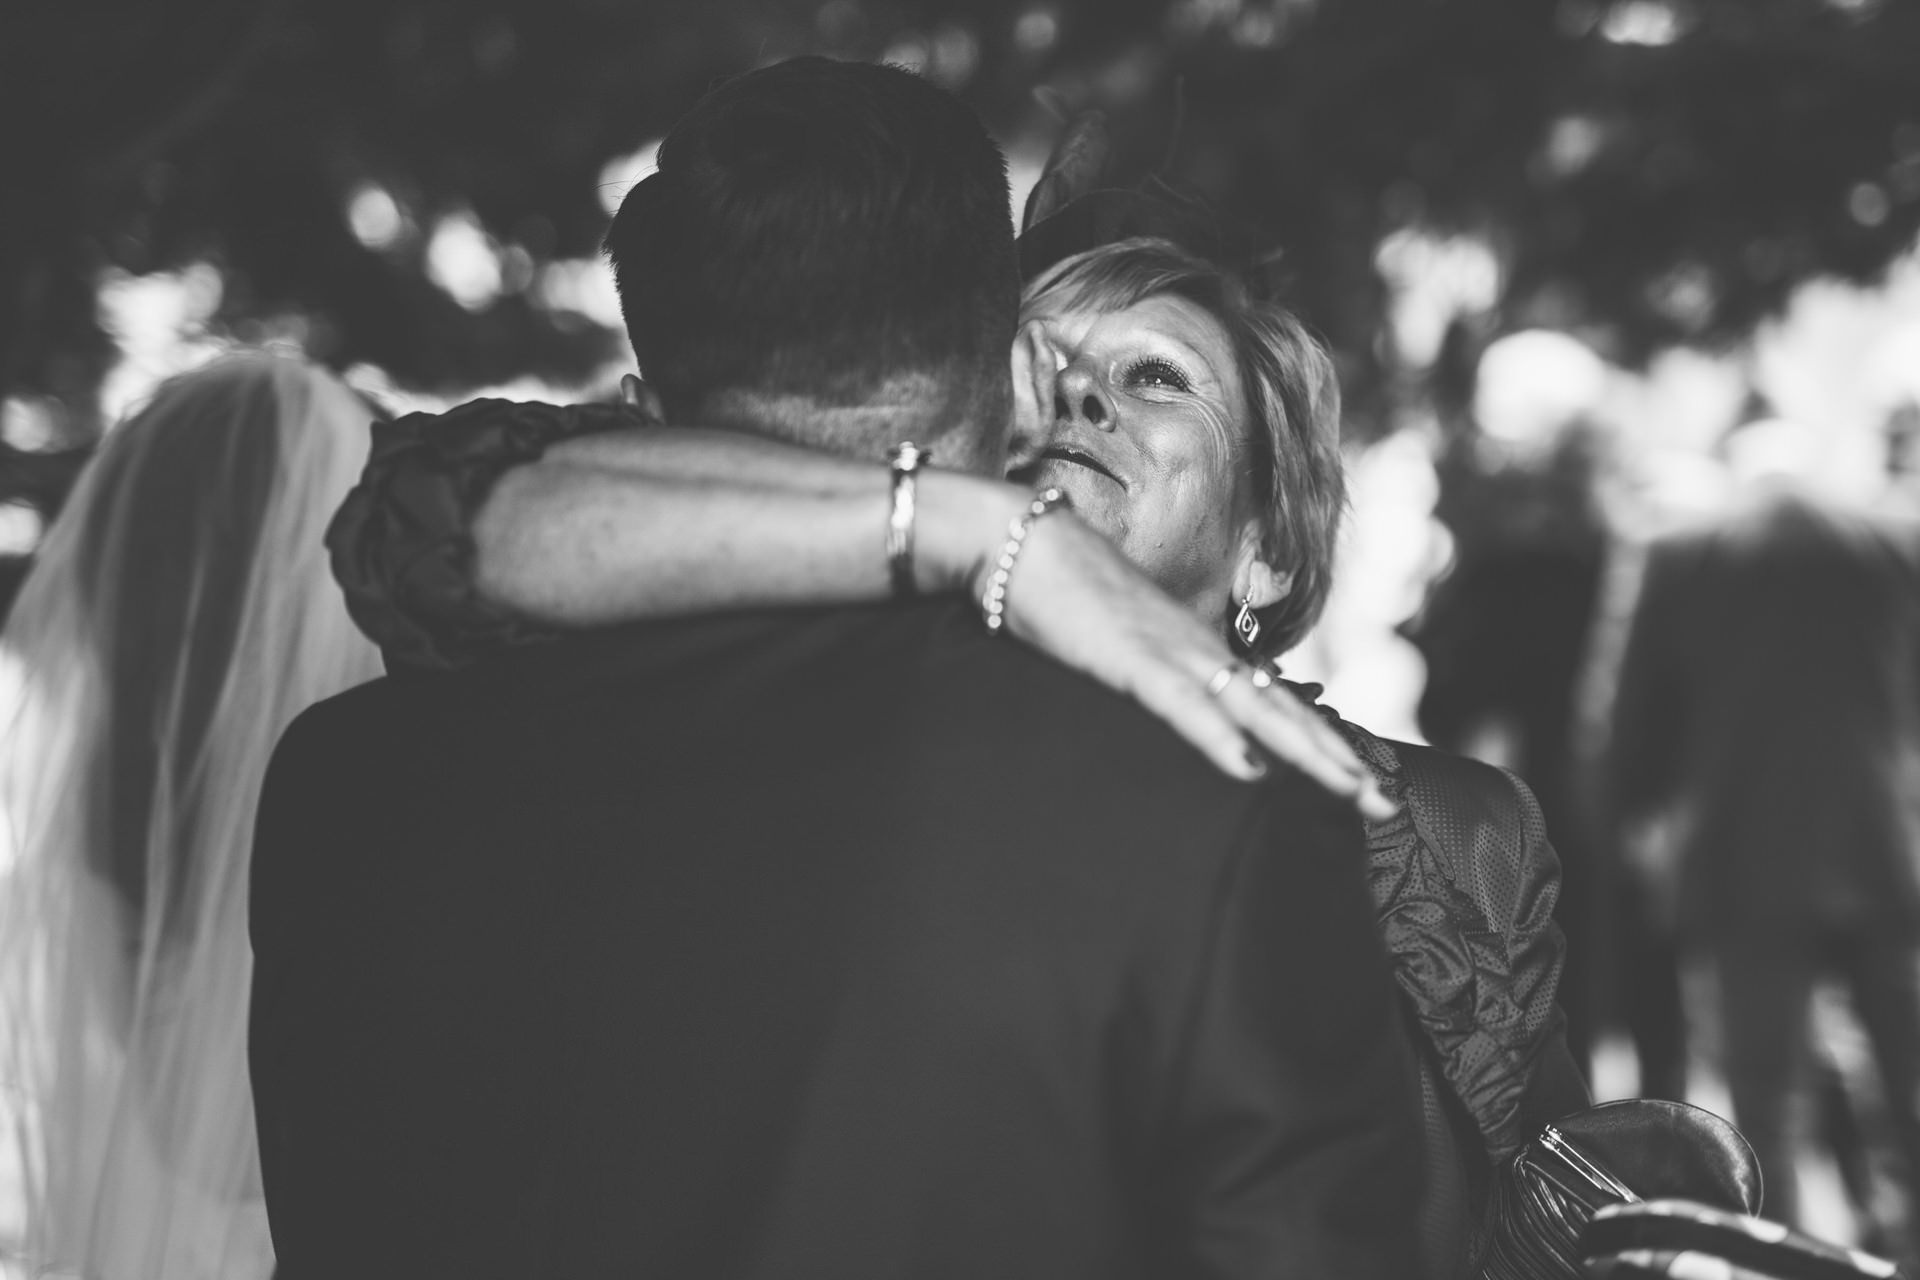 Best wedding photography 2016 - black and white hugging